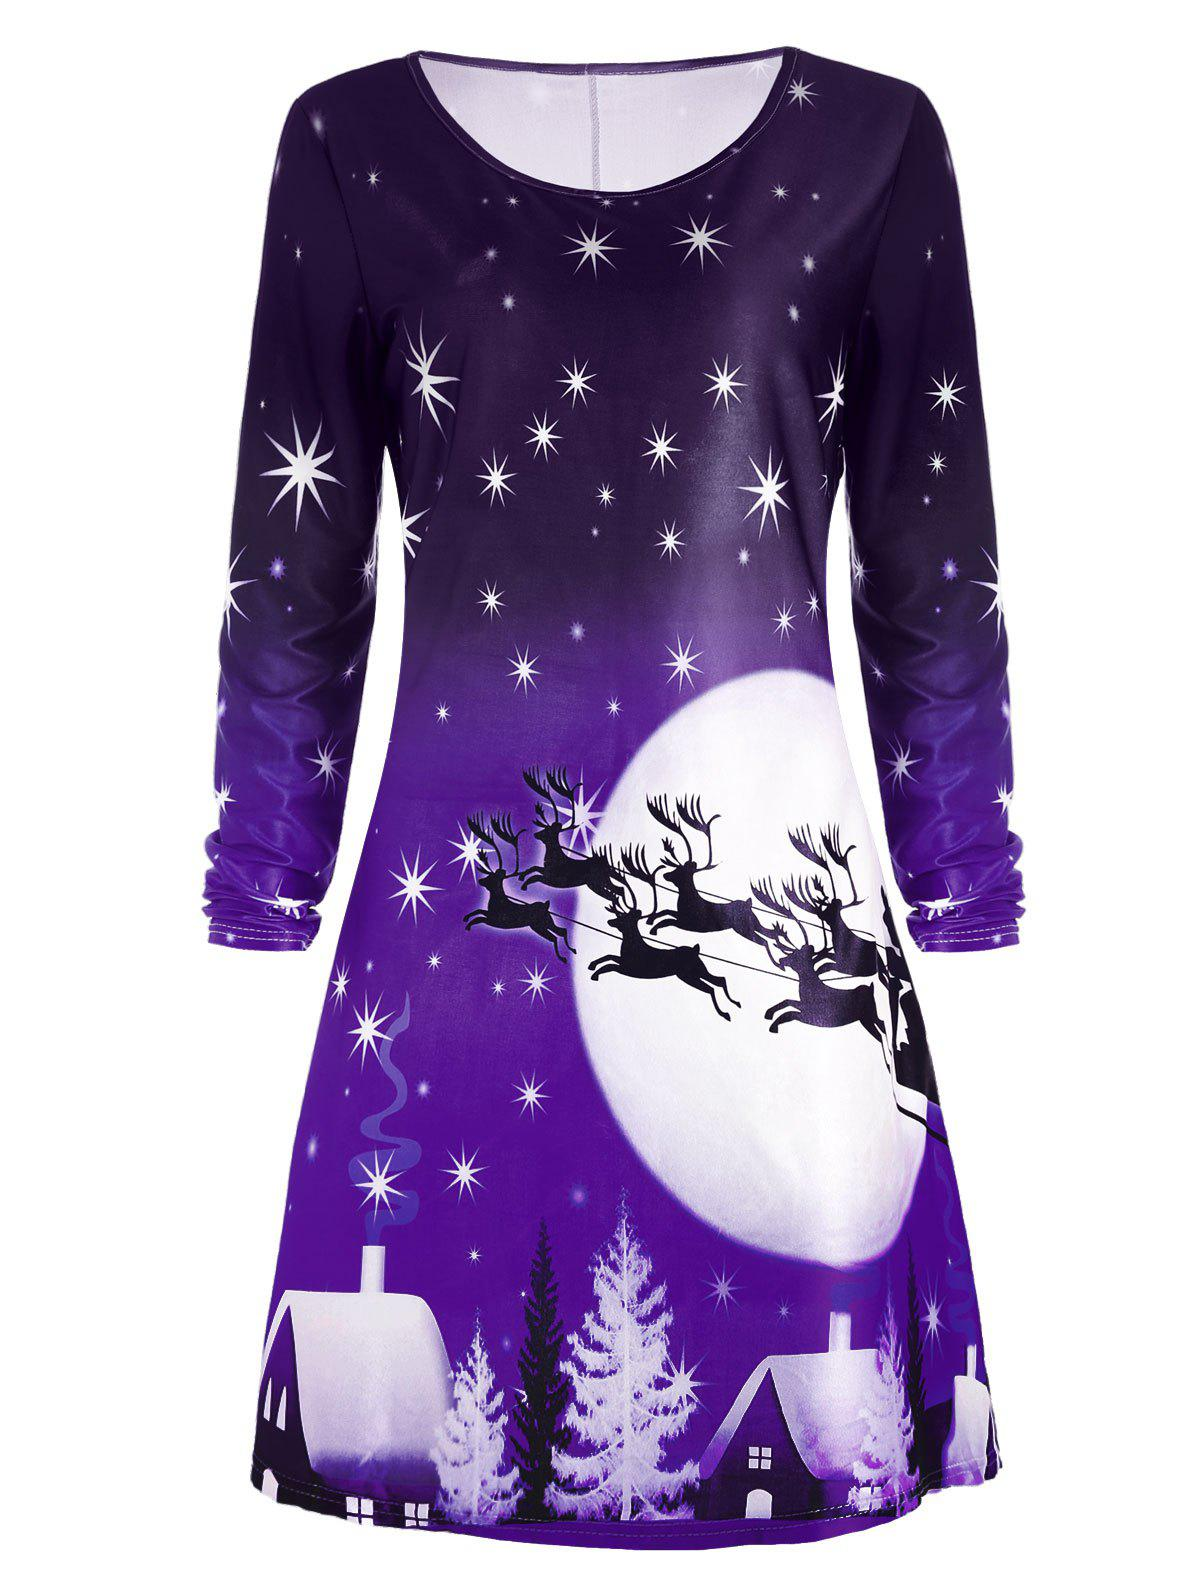 Christmas Deer Long Sleeve Tee Skater DressWOMEN<br><br>Size: 2XL; Color: PURPLE; Style: Casual; Material: Polyester; Silhouette: A-Line; Dresses Length: Knee-Length; Neckline: Round Collar; Sleeve Length: Long Sleeves; Pattern Type: Animal,Character,Print,Star; With Belt: No; Season: Fall; Weight: 0.2300kg; Package Contents: 1 x Dress; Occasion: Casual;